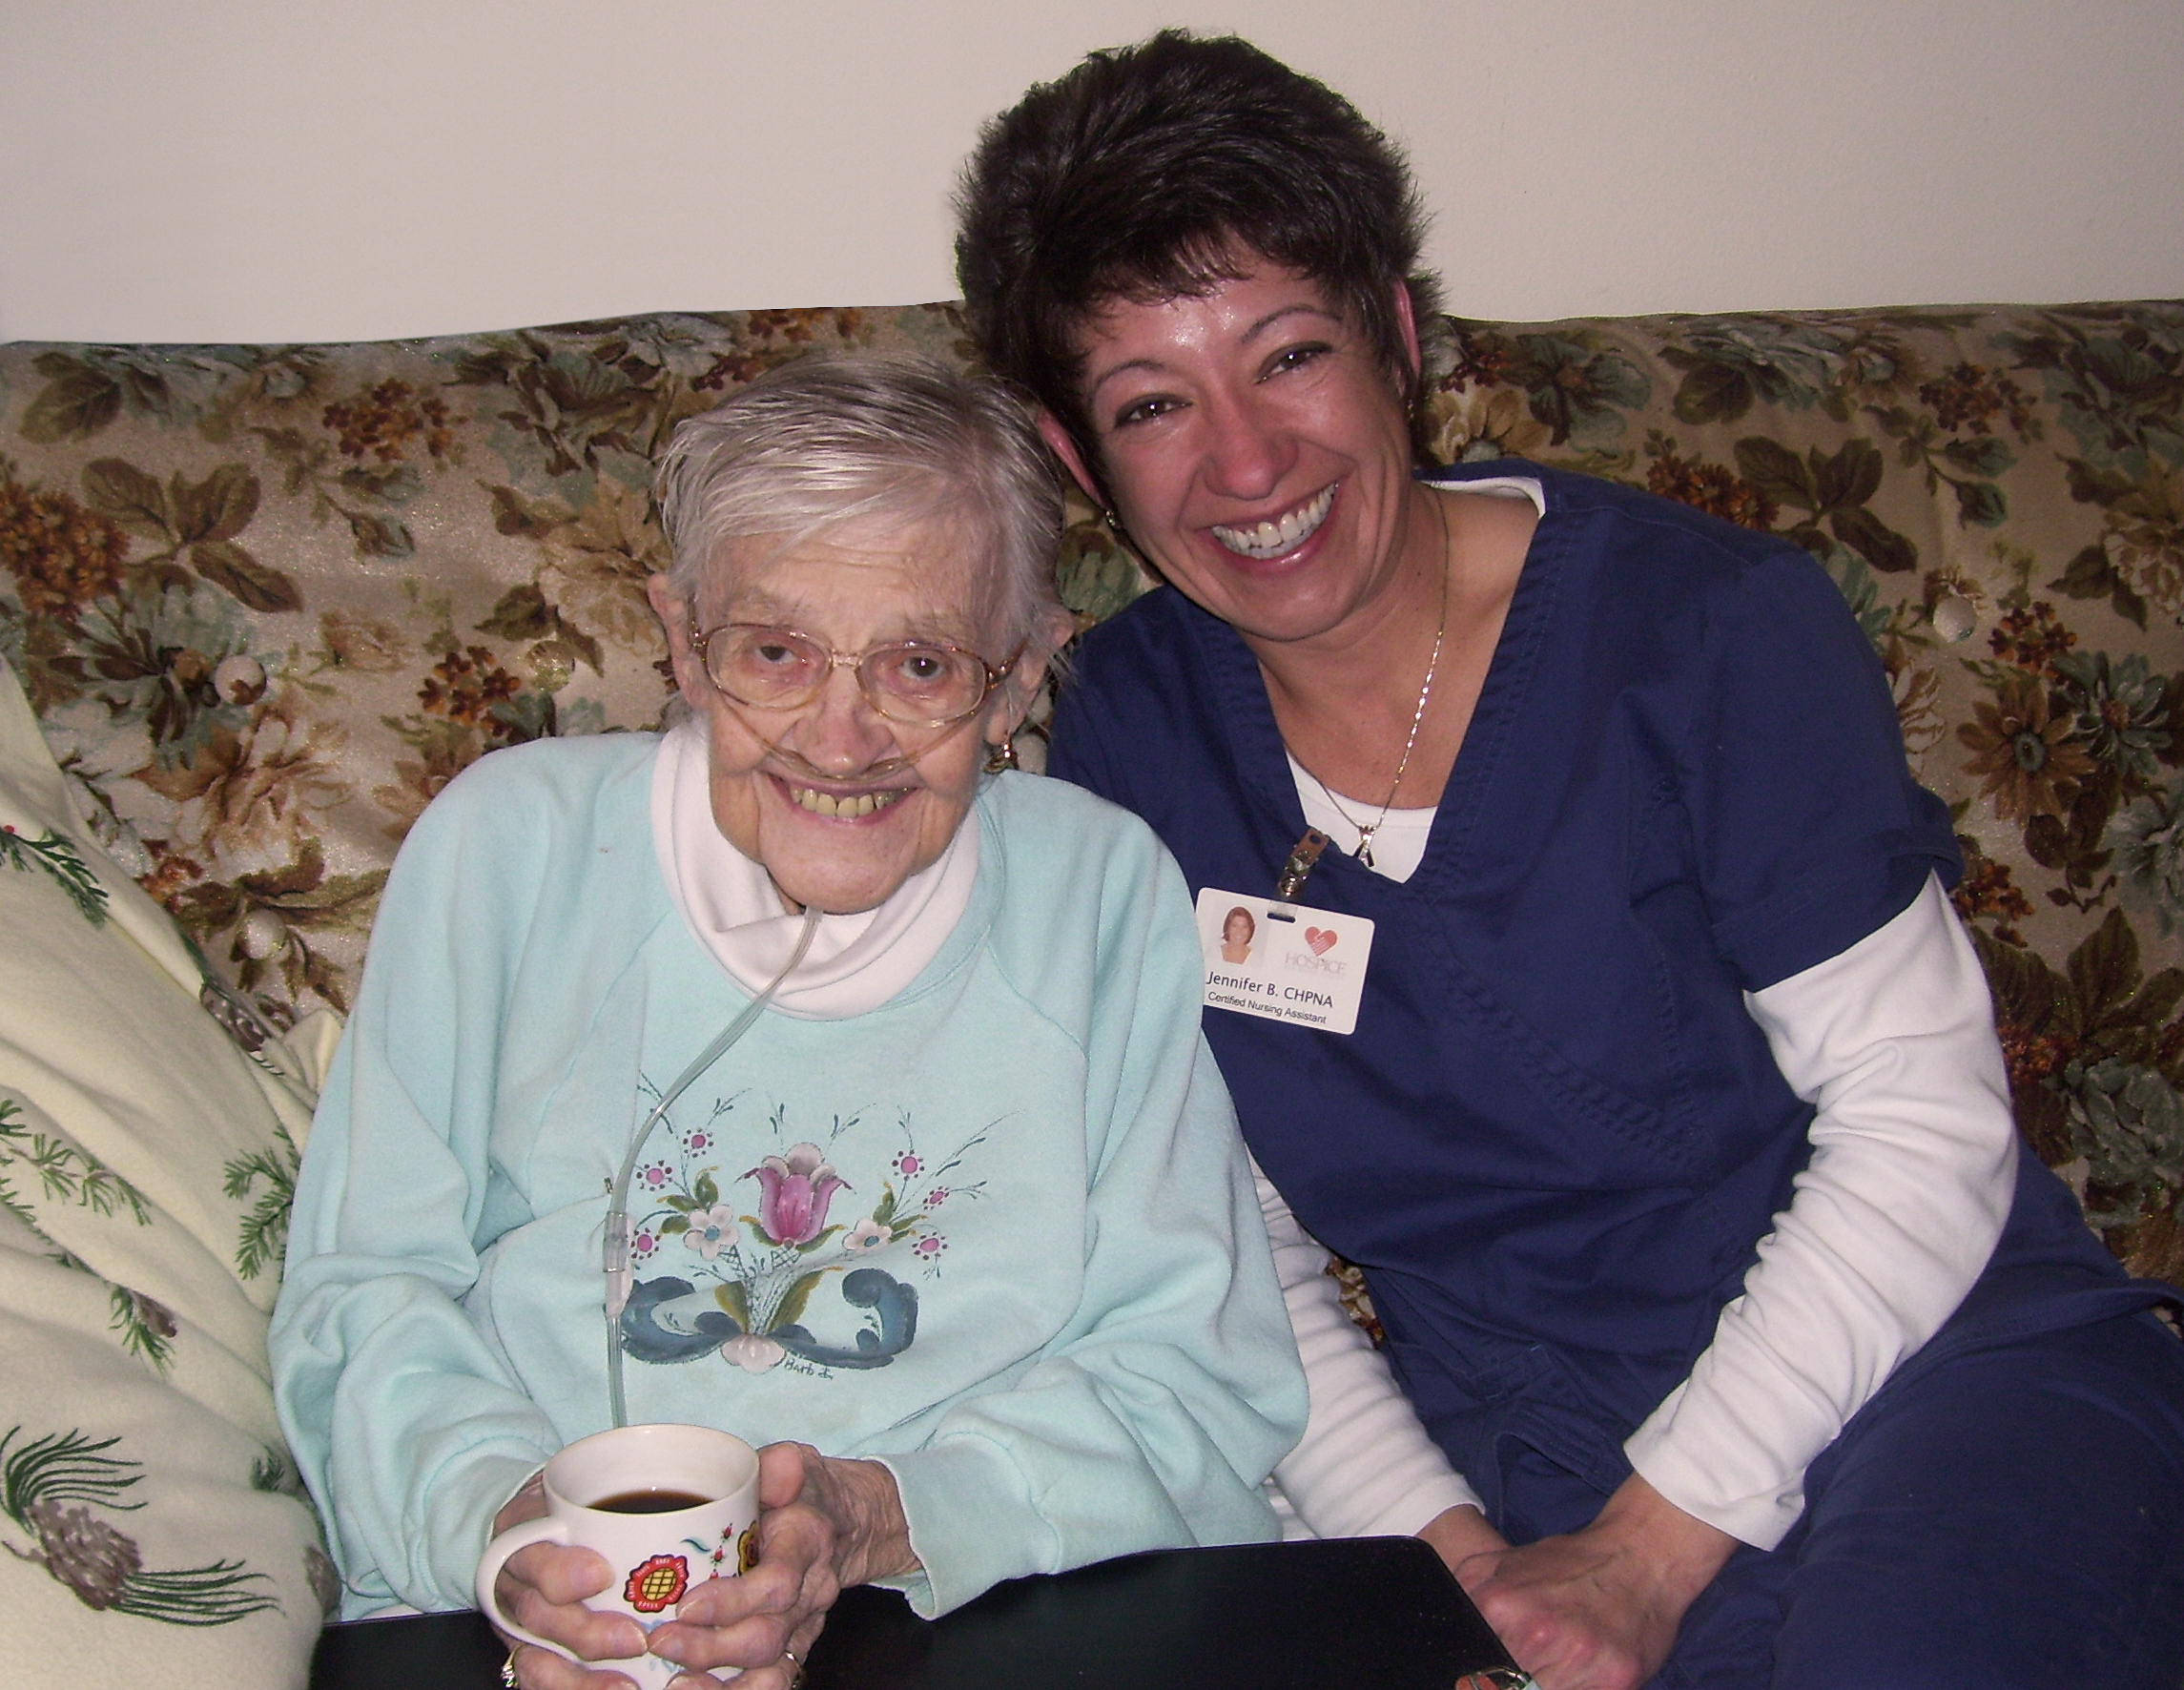 Heart to Heart: Hospice Staff a Precious Aid to a Patient